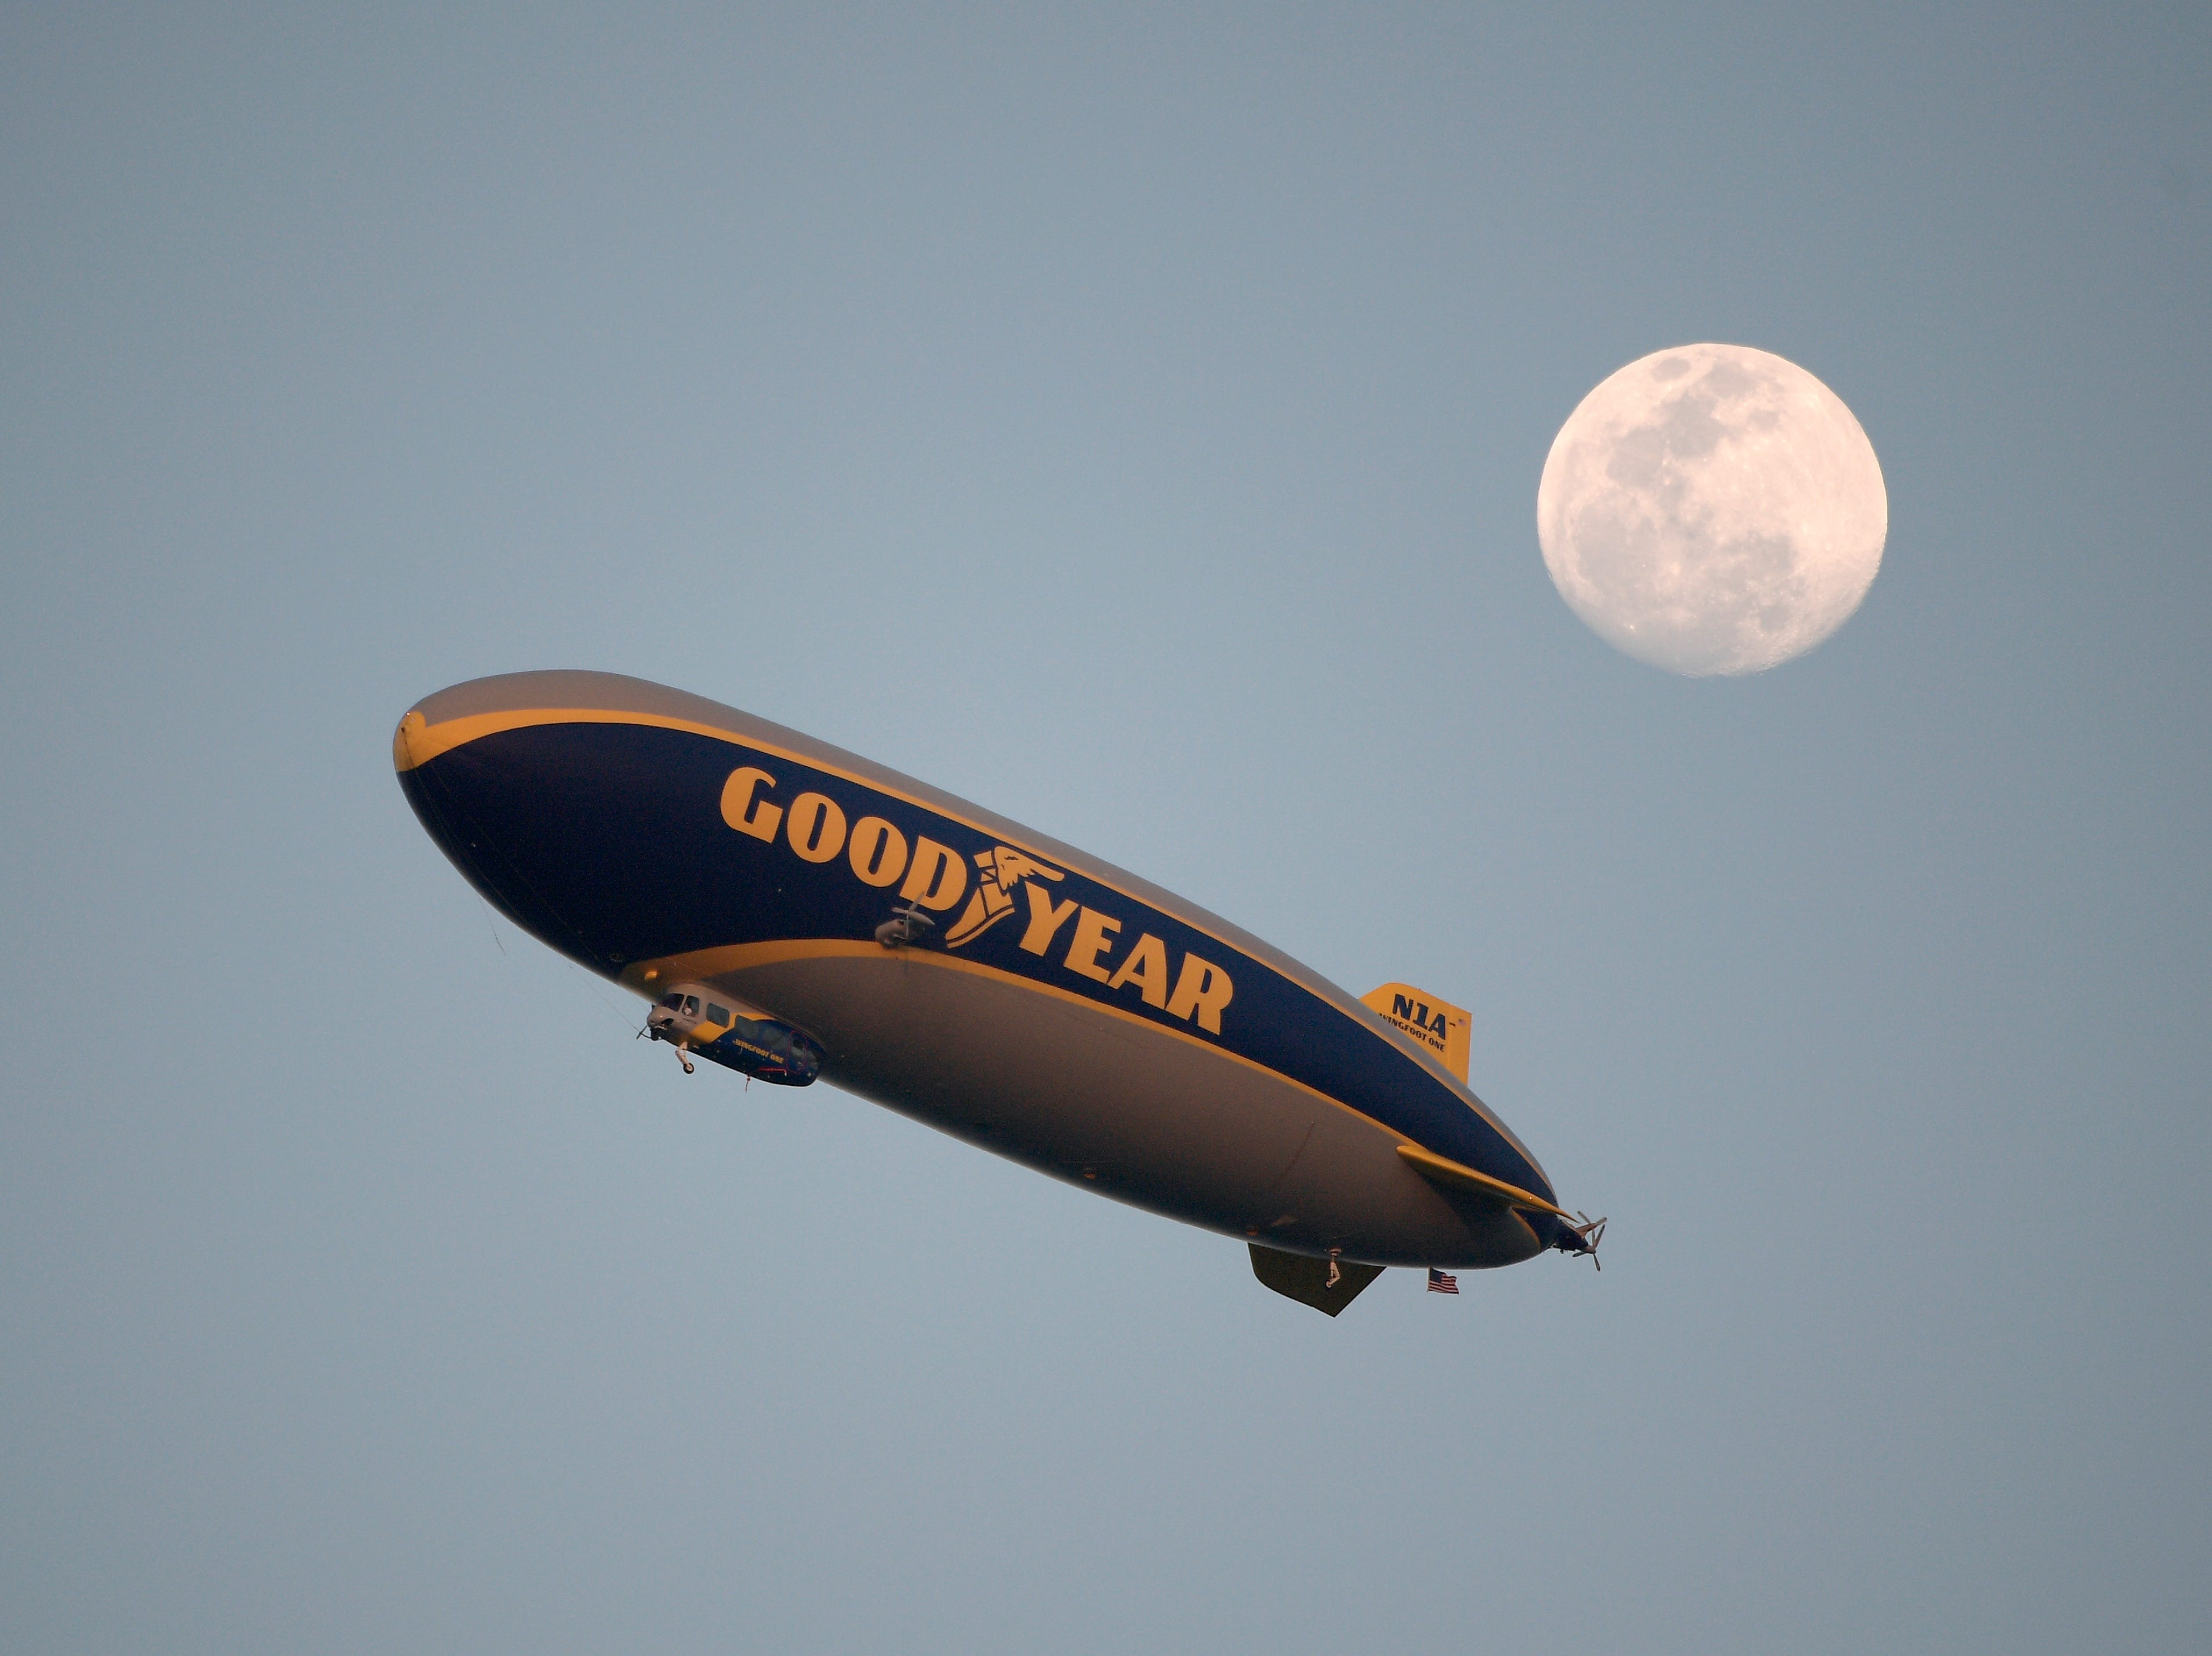 The Goodyear blimp flies in view of the moon during the NASCAR Daytona 500 auto race at Daytona International Speedway.